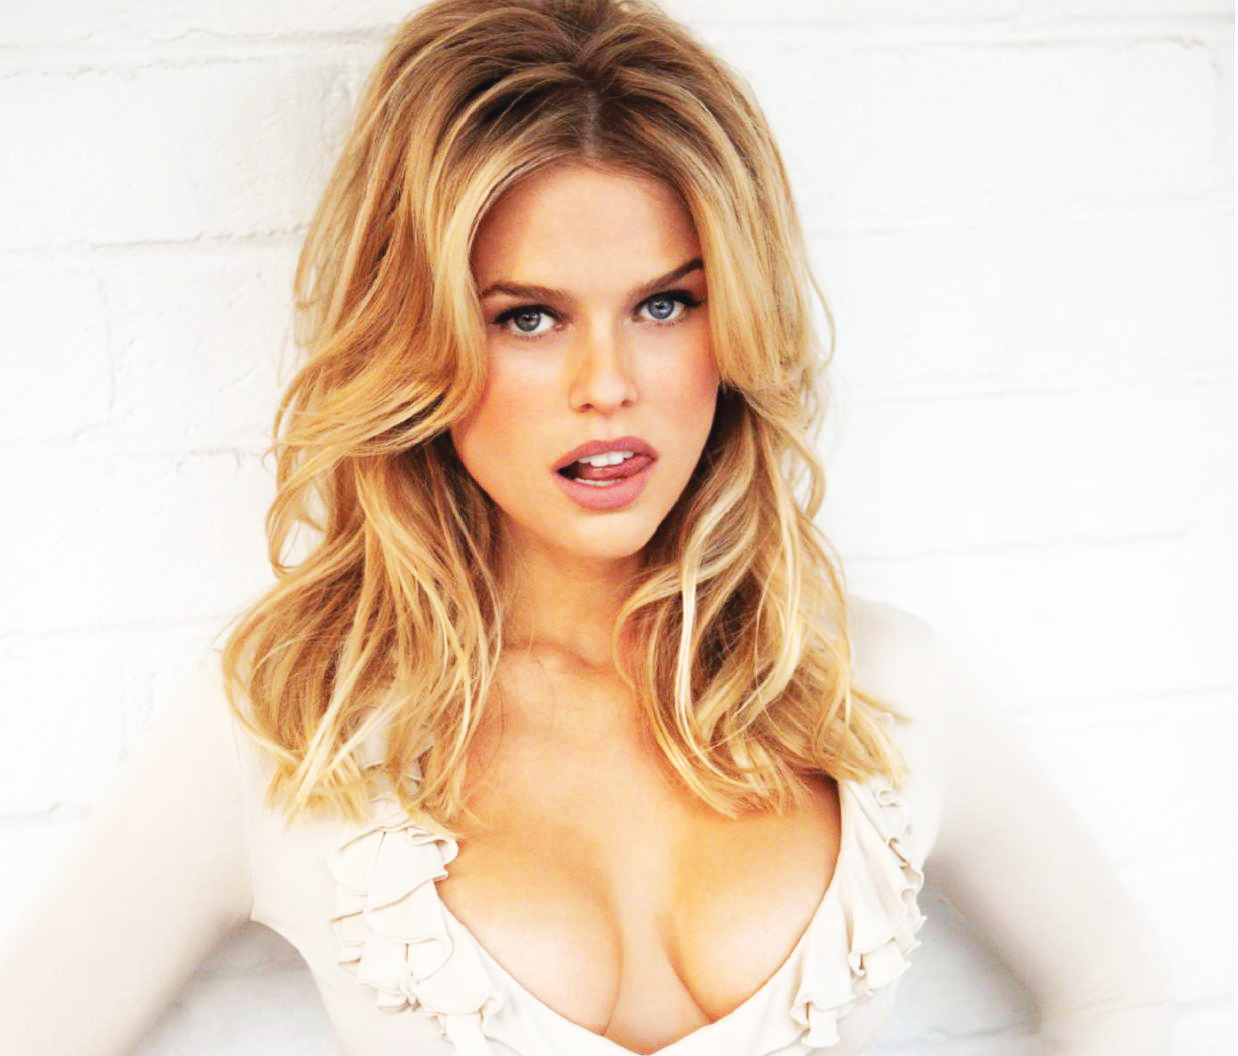 Cleavage TheFappening Alice Eve naked photo 2017